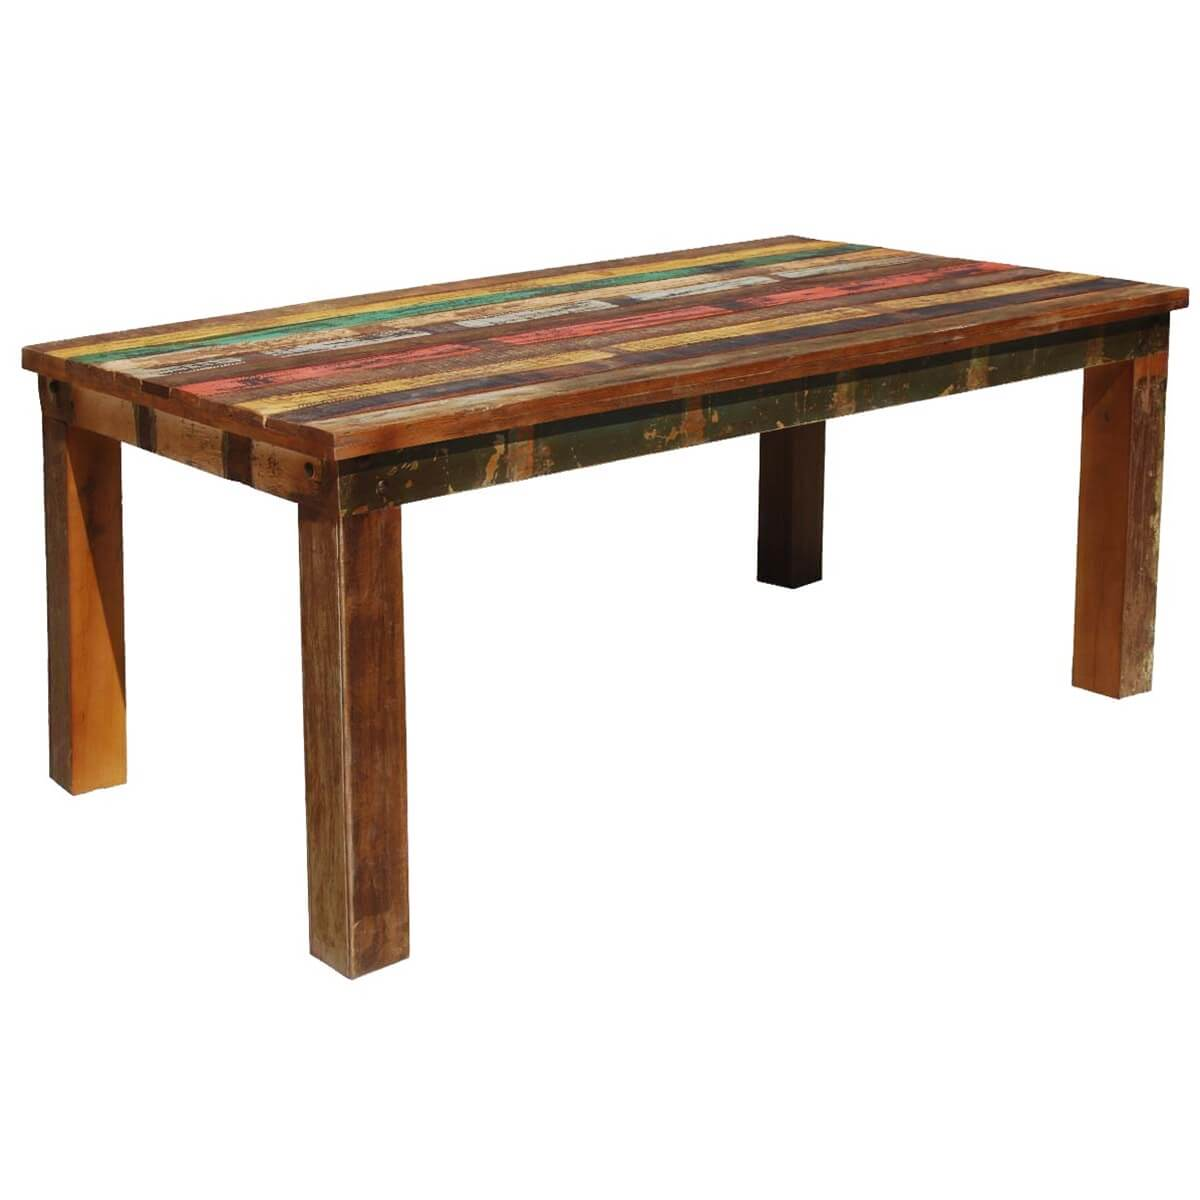 Appalachian rustic reclaimed wood striped dining table for Restaurant tables